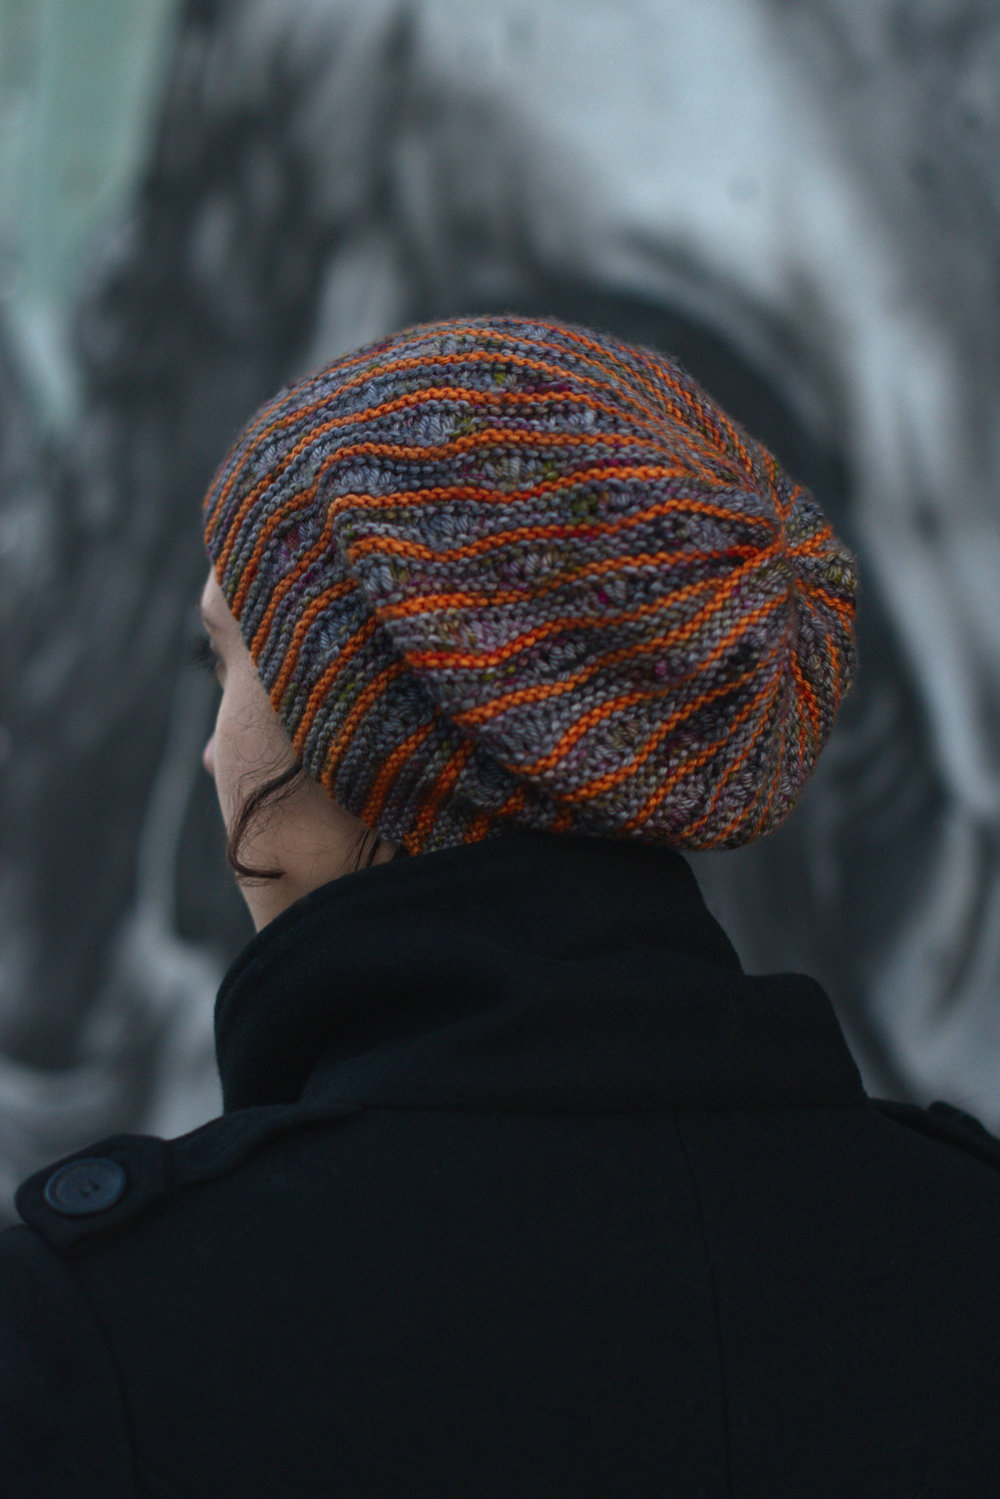 Laminard reversible sideways knit slouchy hat for dk hand knitting yarn